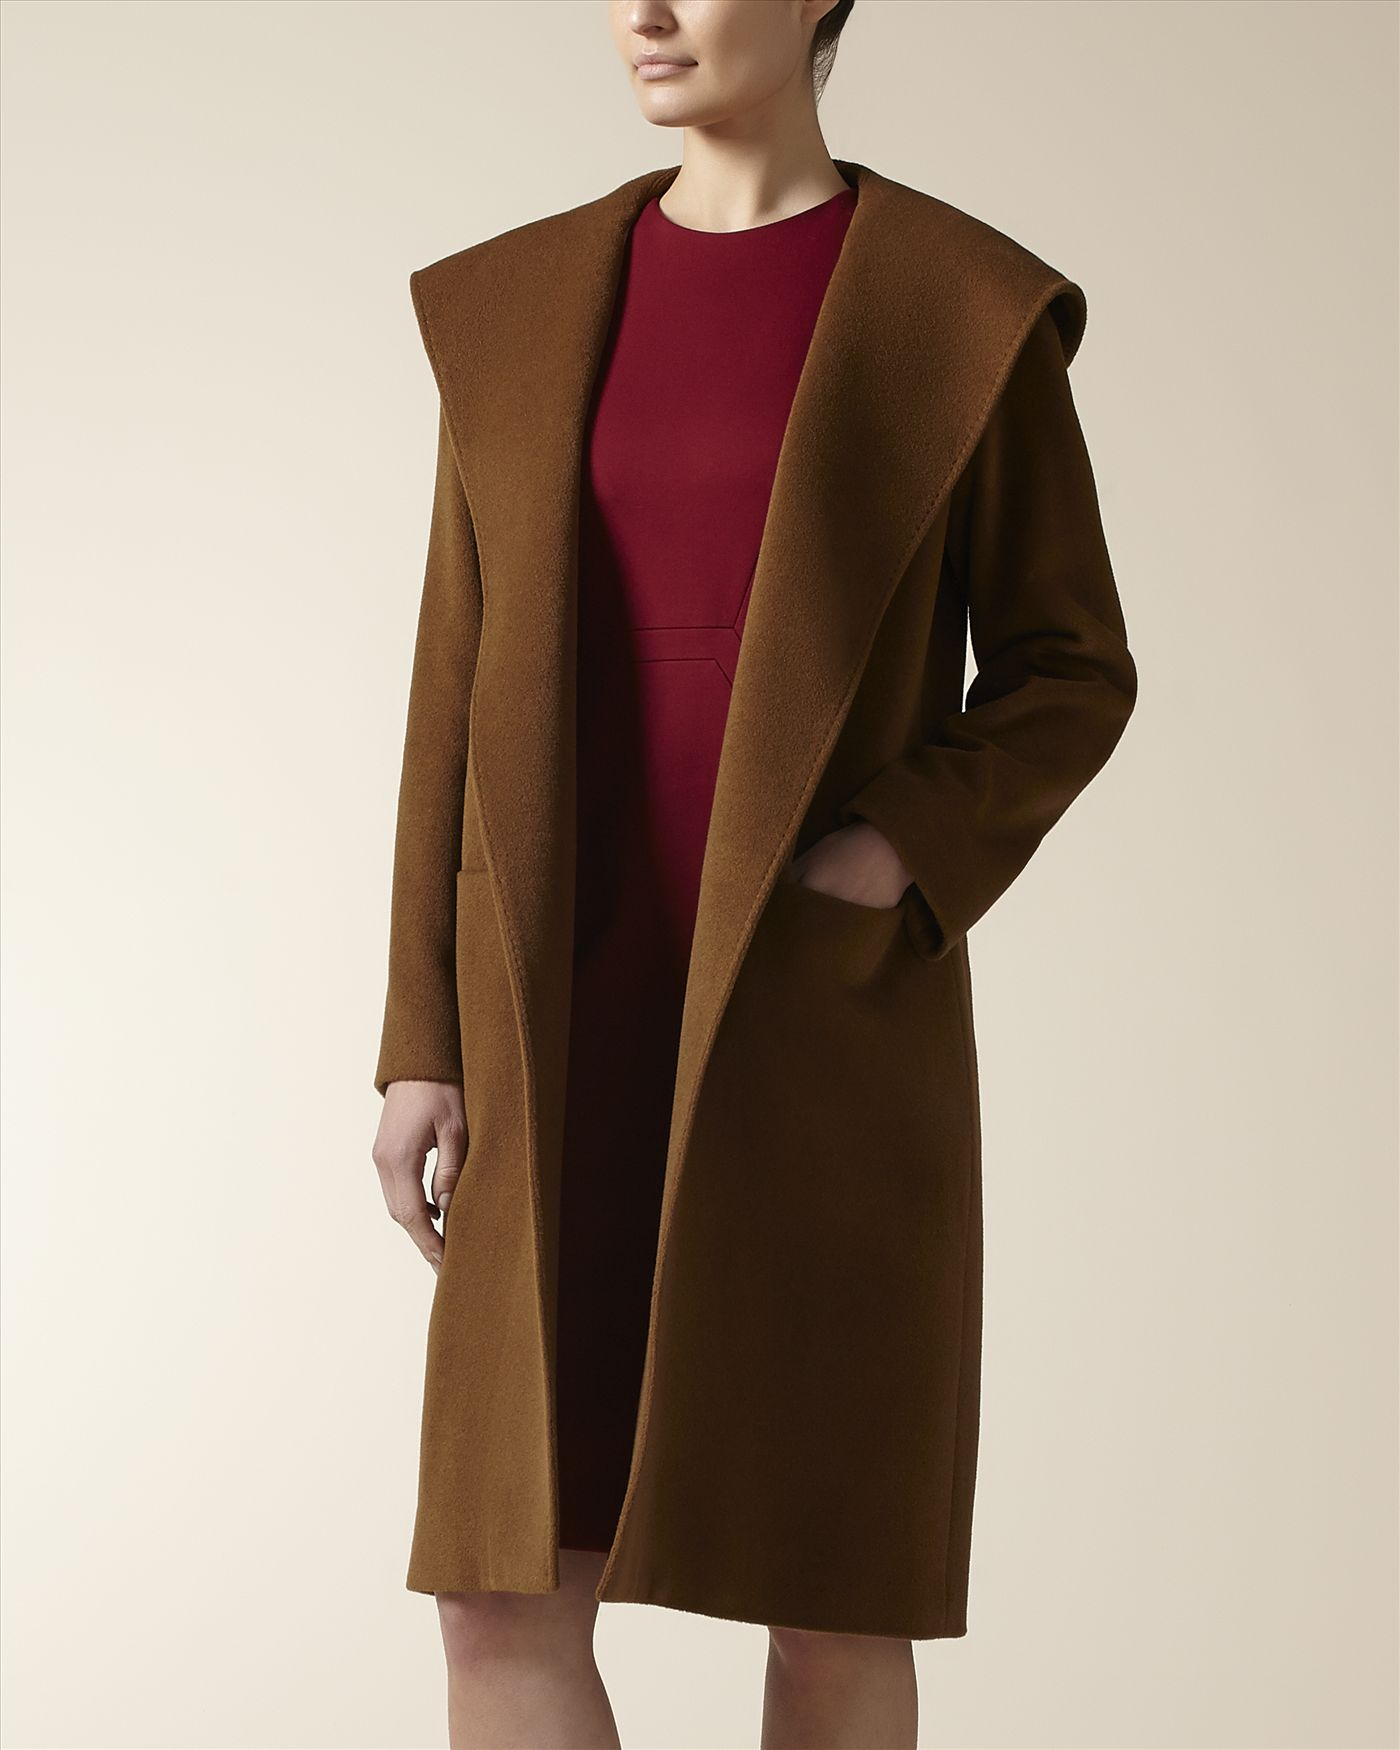 Jaeger Wool Cashmere Hooded Wrap Coat in Brown | Lyst